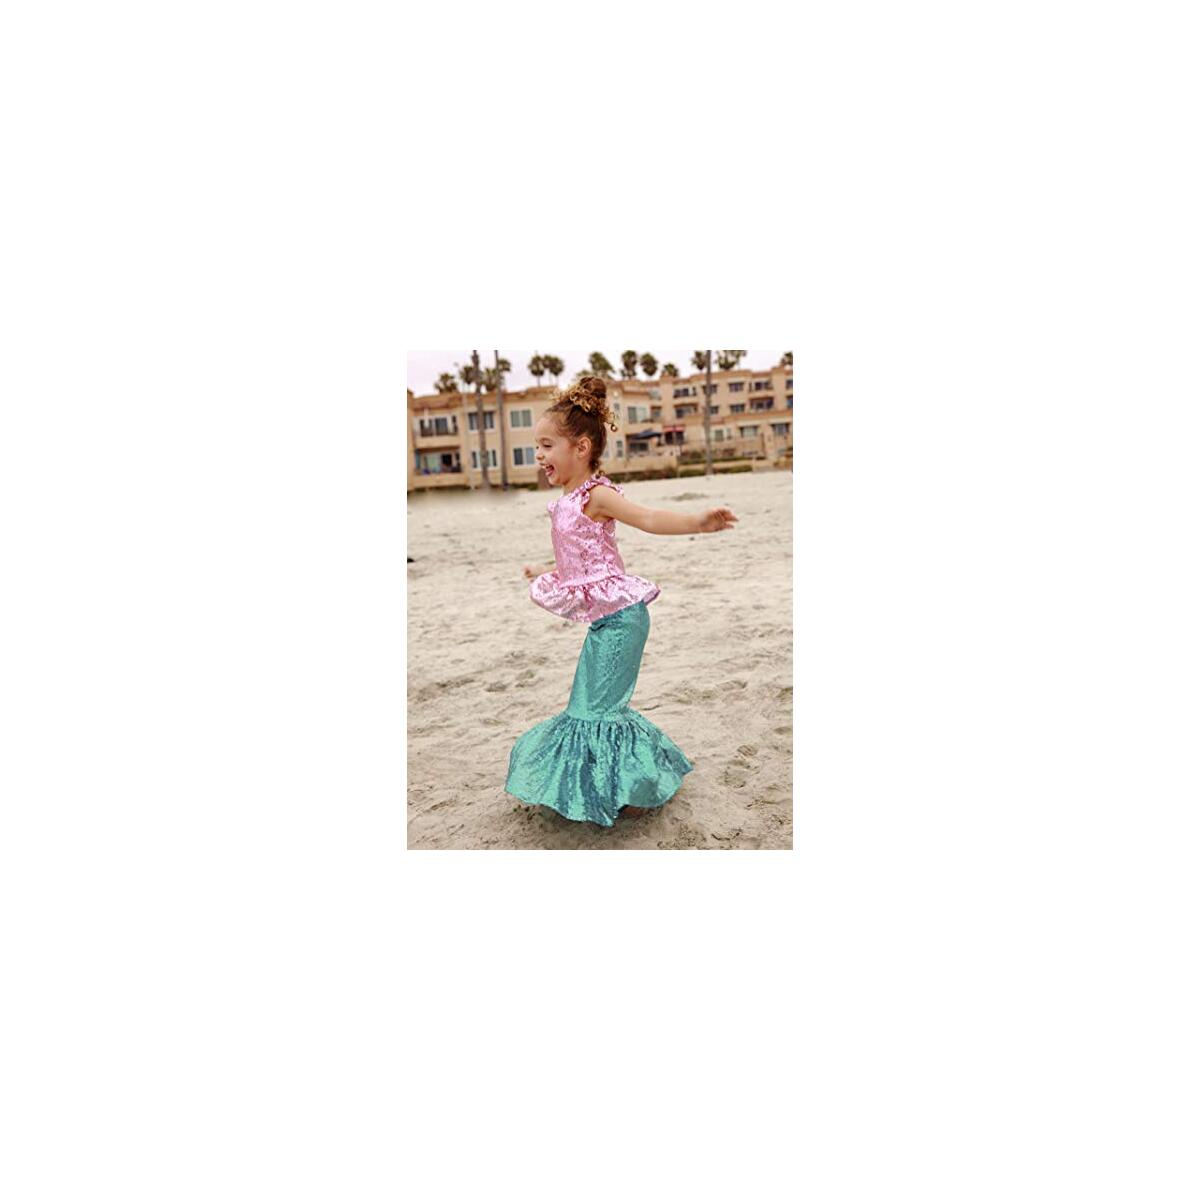 Toddler Girl's Mermaid Costume for Birthday Party, Dress up Play and Halloween - Pink Top W/ Turquoise Skirt M (3-4 Years)